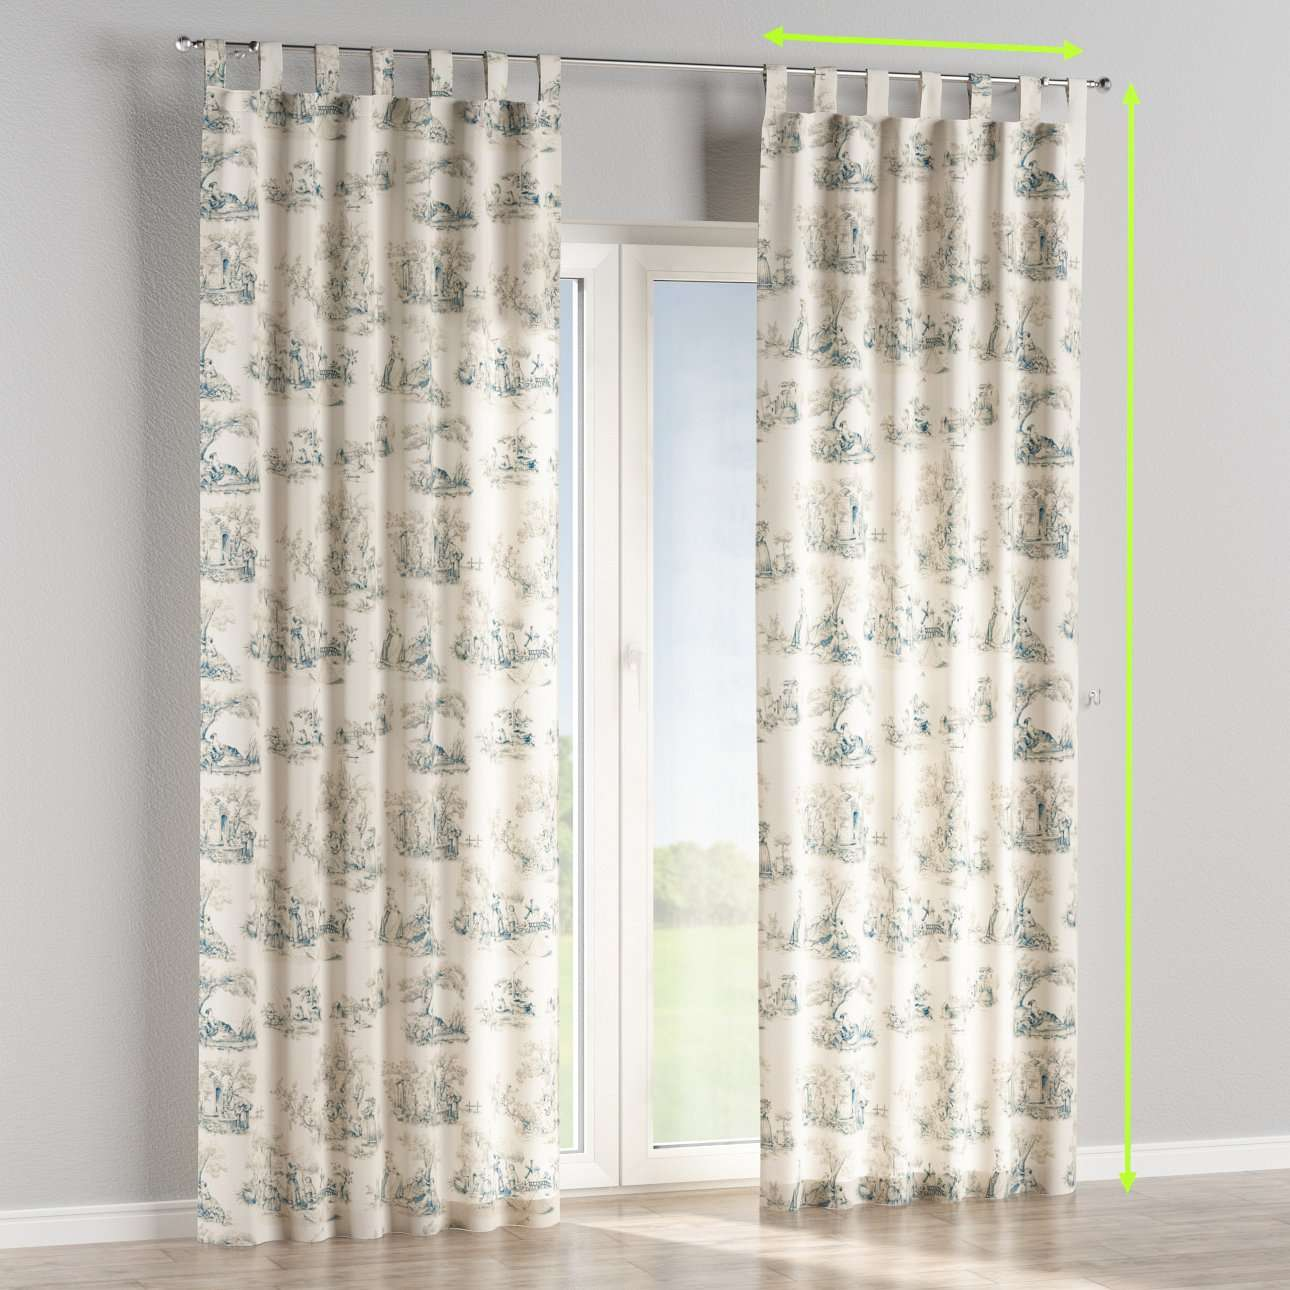 Tab top lined curtains in collection Avinon, fabric: 132-66